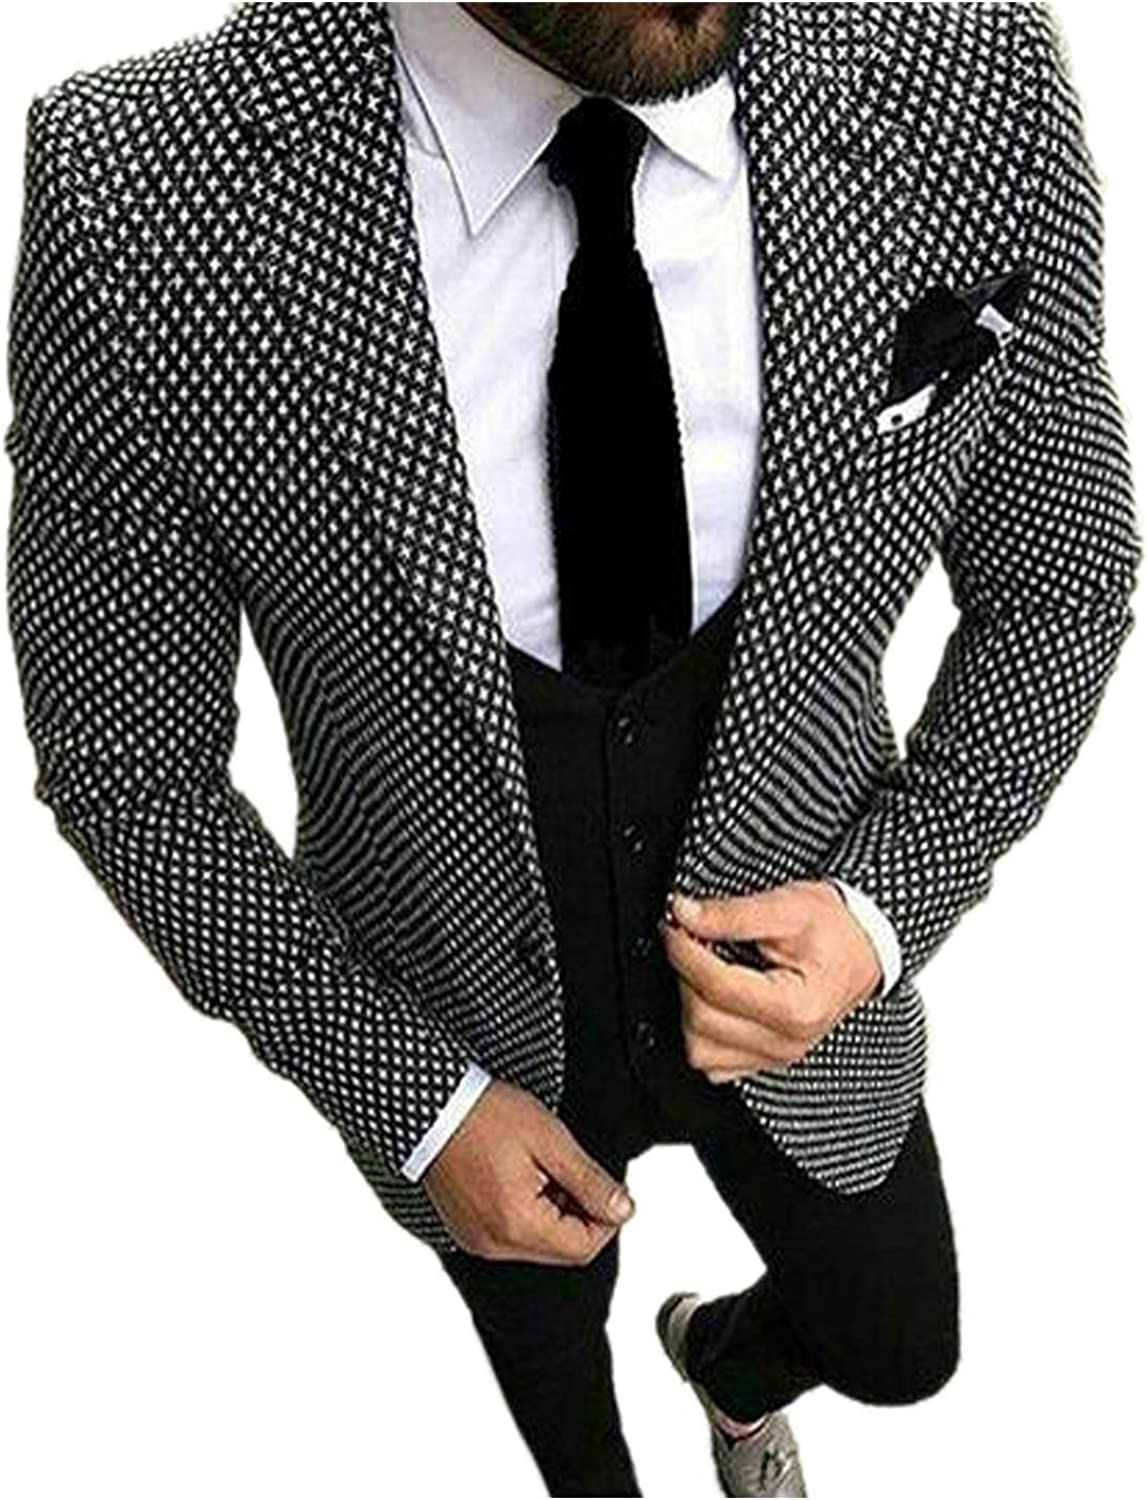 JYDress Men's Casual 3 Pieces Business Suits Terno Slim Fit Black and White Plaid Tuxedos Wedding Suits